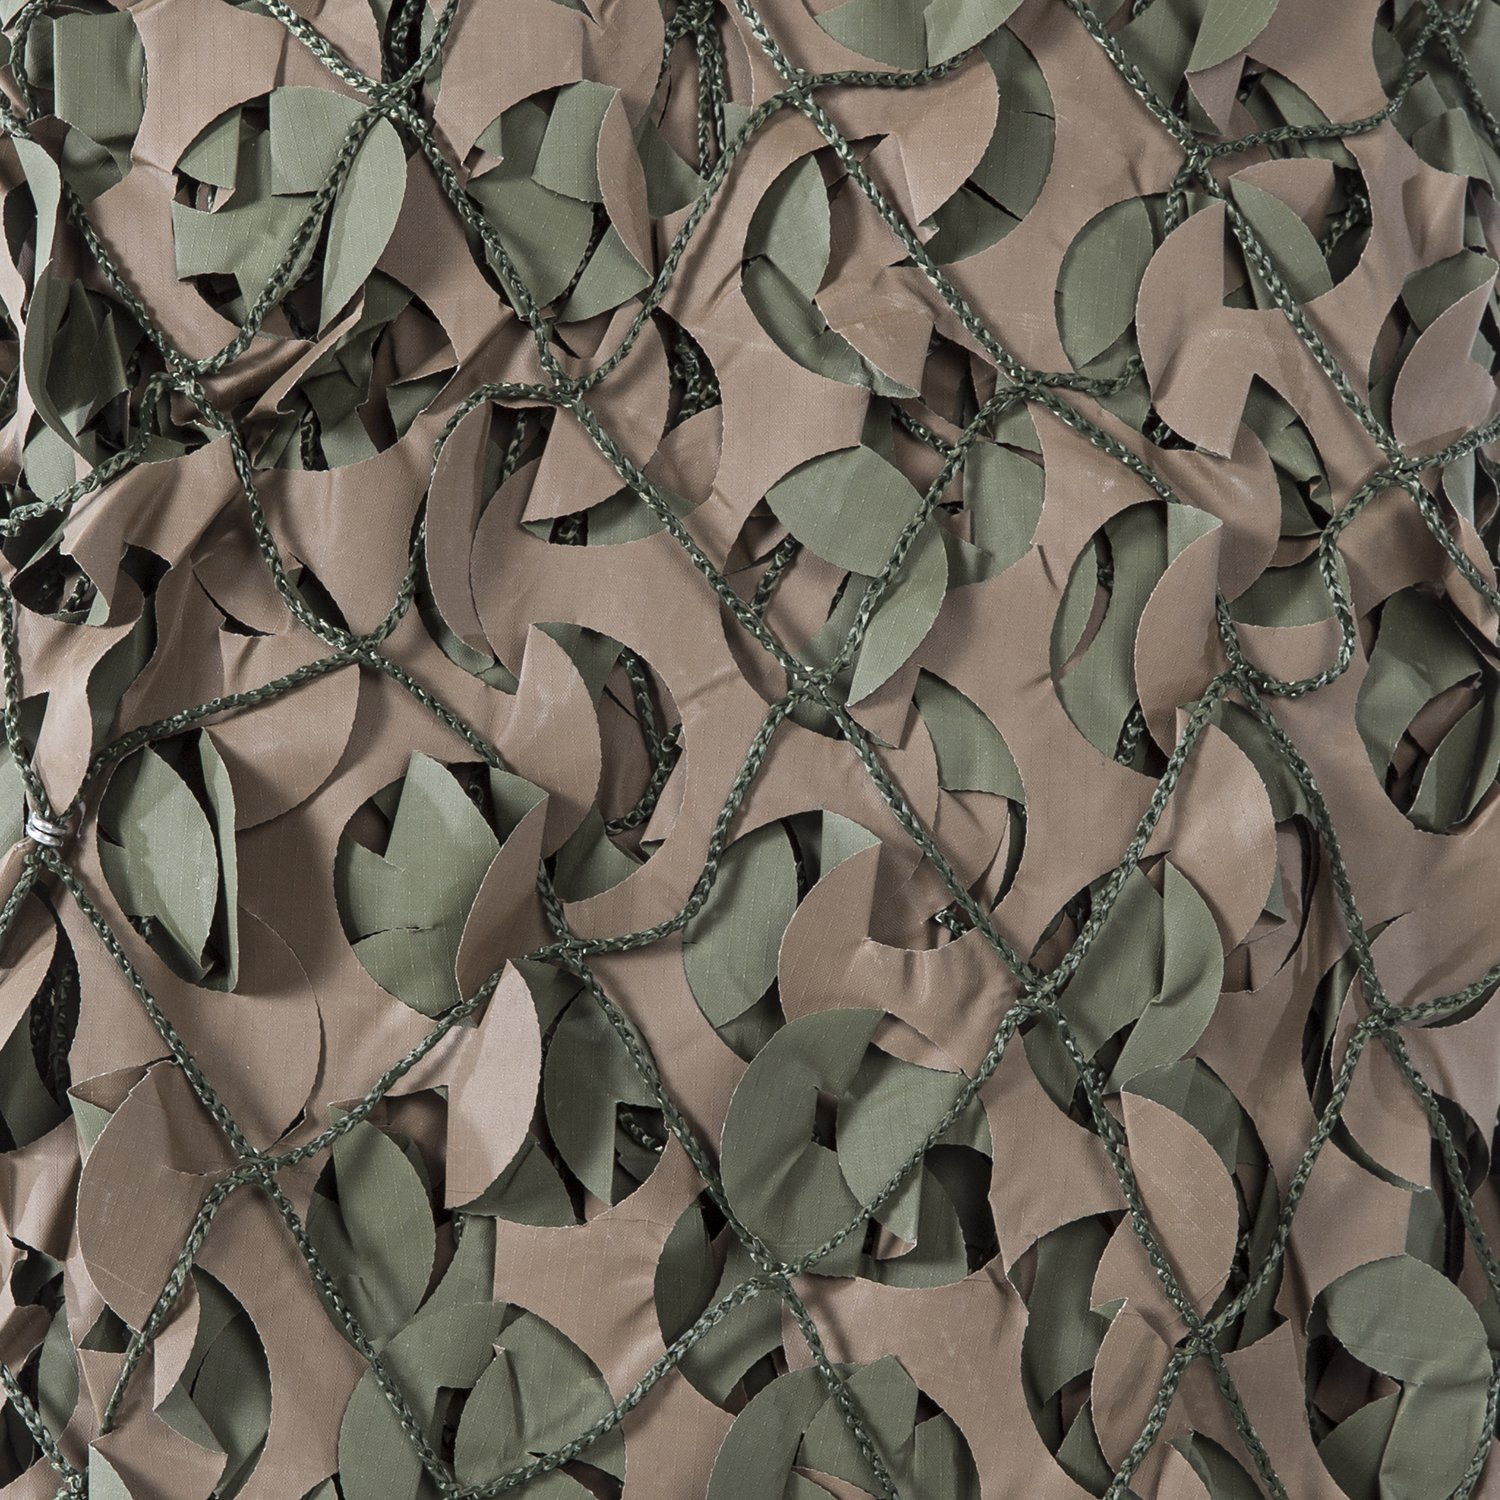 CamoSystems Premium Series Camouflage Military Net with Mesh Netting Attached